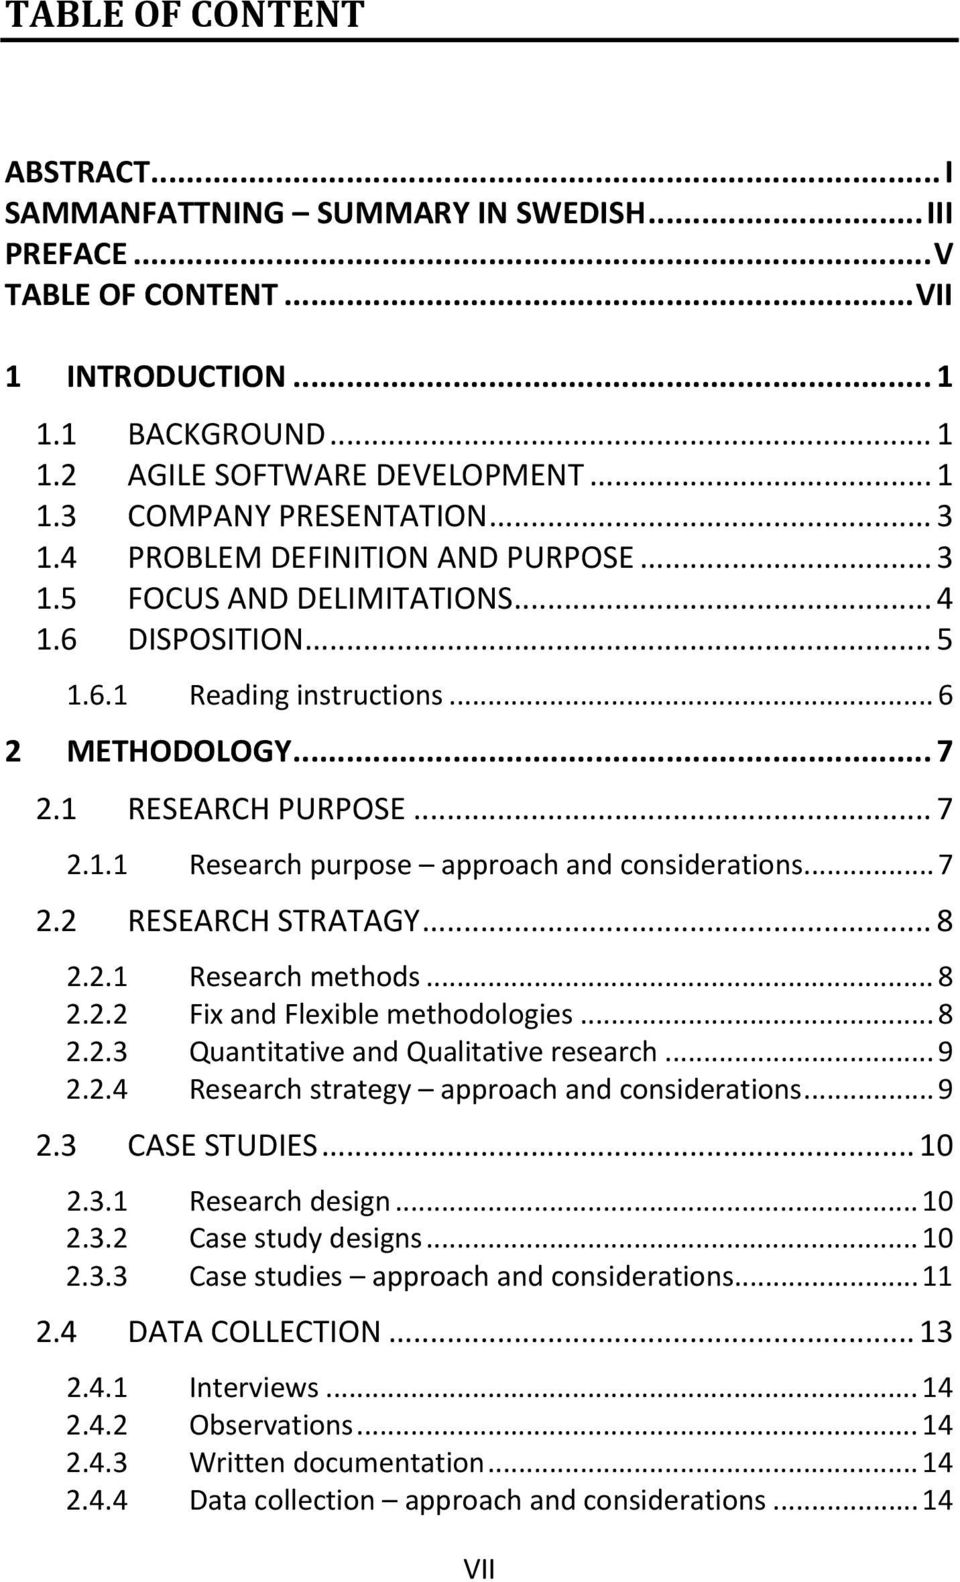 .. 7 2.2 RESEARCH STRATAGY... 8 2.2.1 Research methods... 8 2.2.2 Fix and Flexible methodologies... 8 2.2.3 Quantitative and Qualitative research... 9 2.2.4 Research strategy approach and considerations.